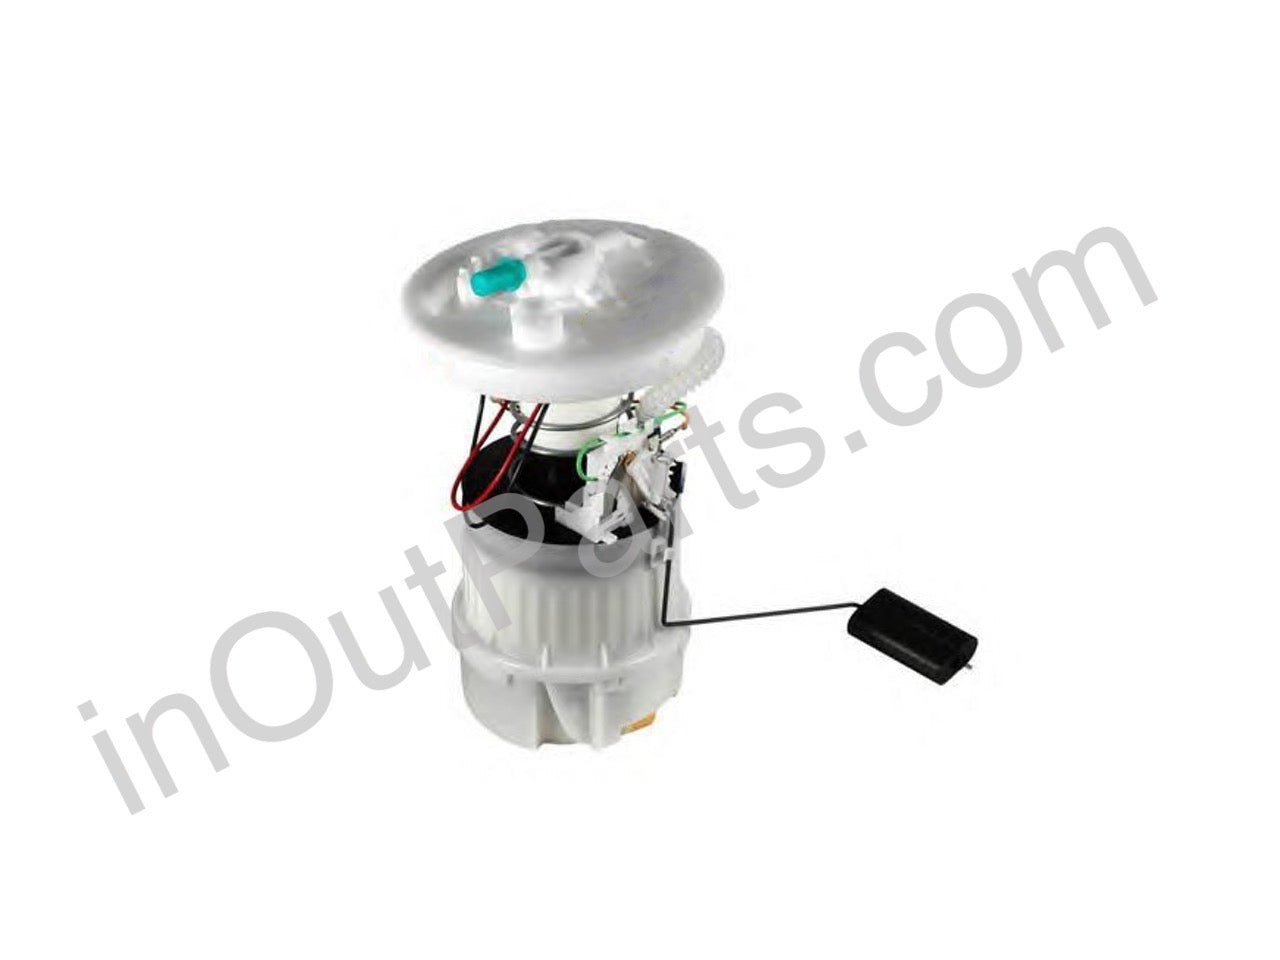 Fuel Filter Fits Ford Focus 2005 2006 2007 2008 2009 2010 2011 C Camry Location Max 2003 10 With Pump